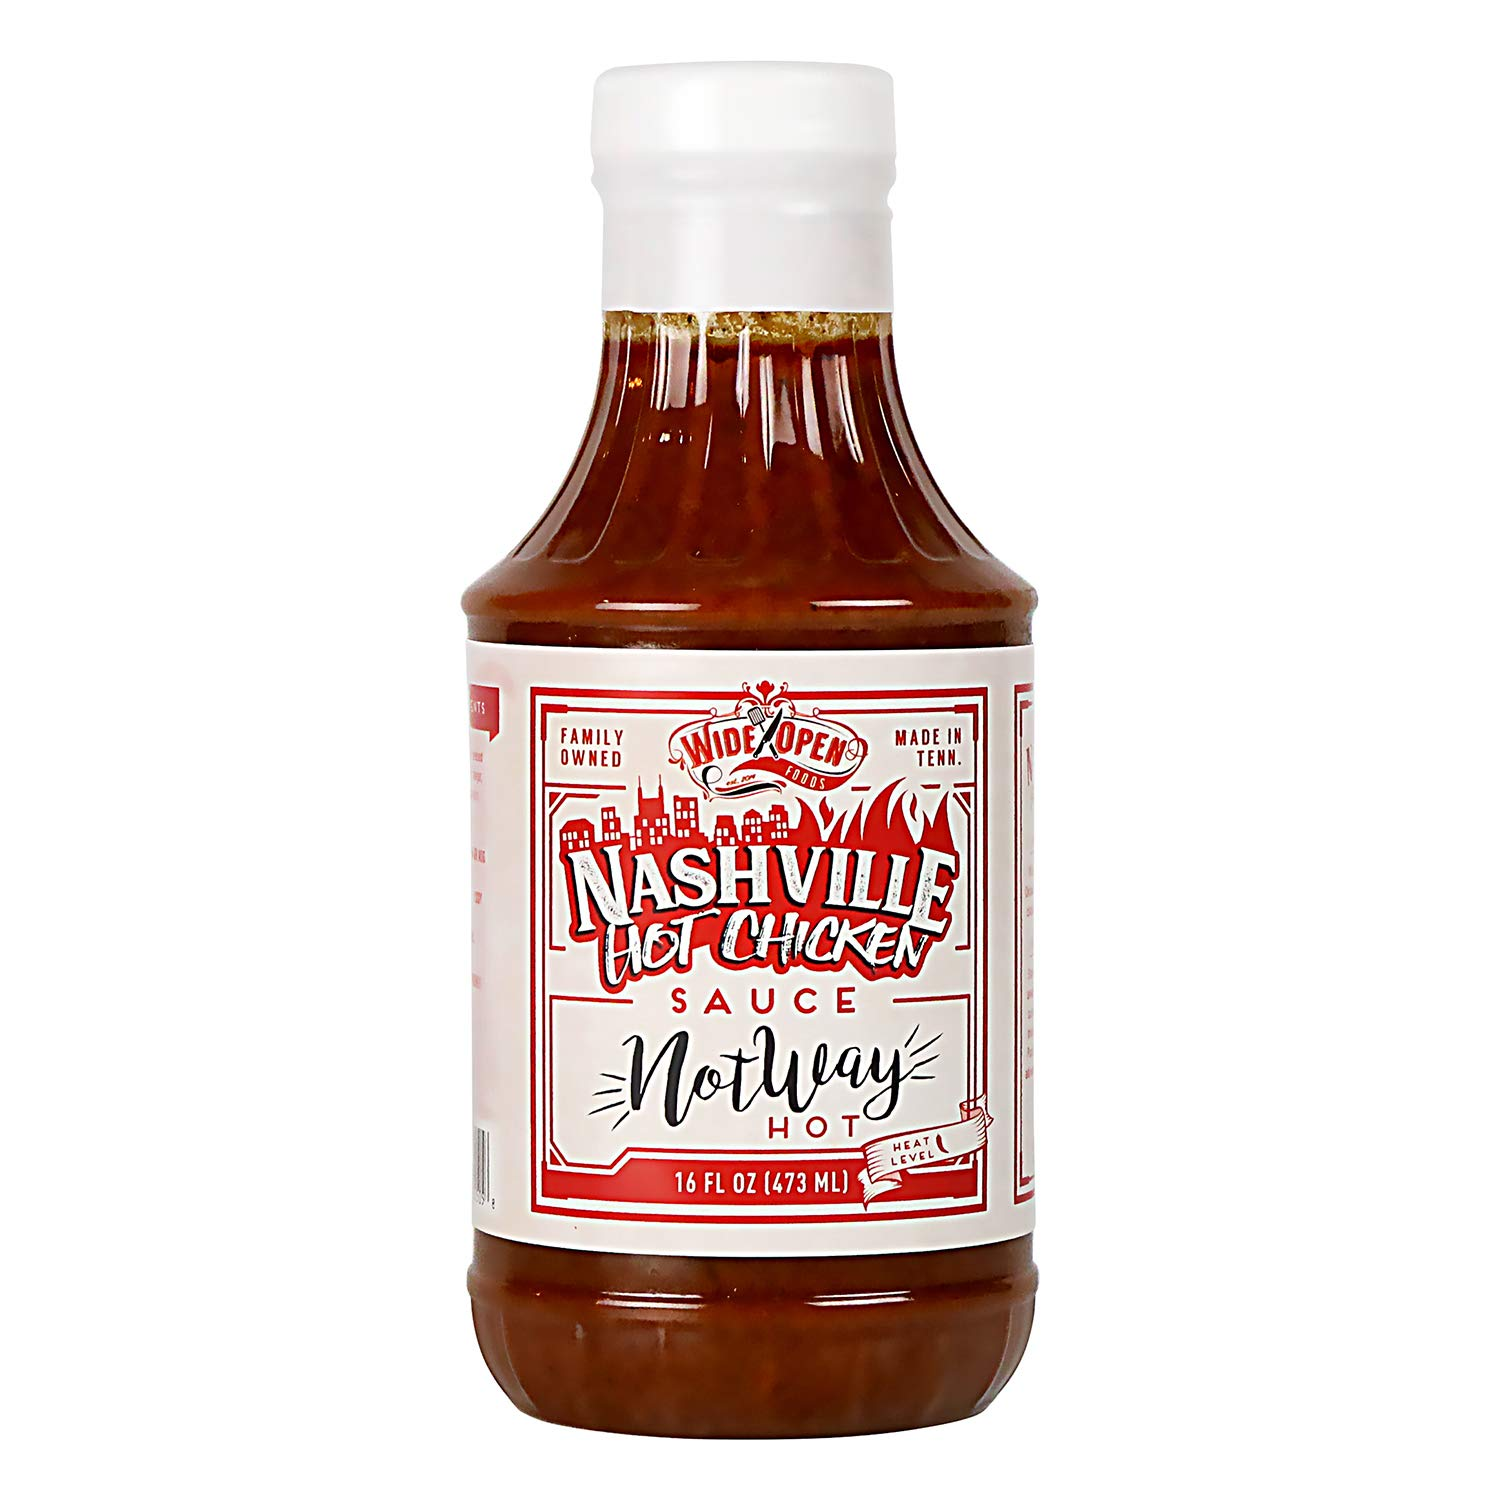 Wide Open Foods Nashville Hot Chicken Sauce - Vegan - Enhances Recipe Flavor with Health Benefits - Different Levels of Spiciness - Perfect For Home & Kitchen (Heat Level 1 - Not Way Hot, 1 Pack)